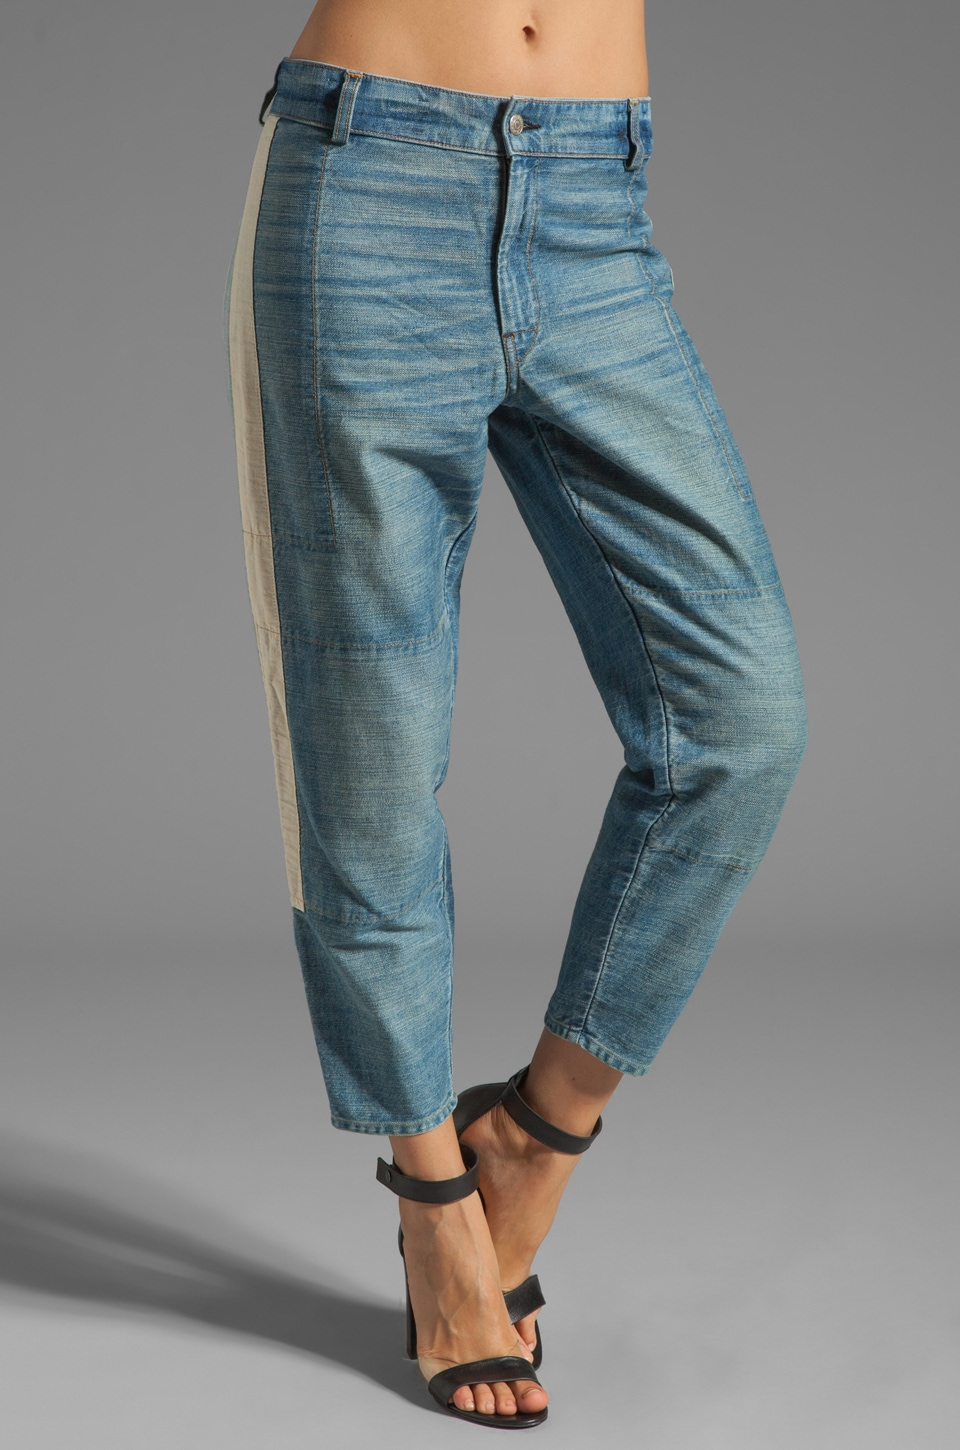 rag & bone/JEAN Racer Jean in Relay